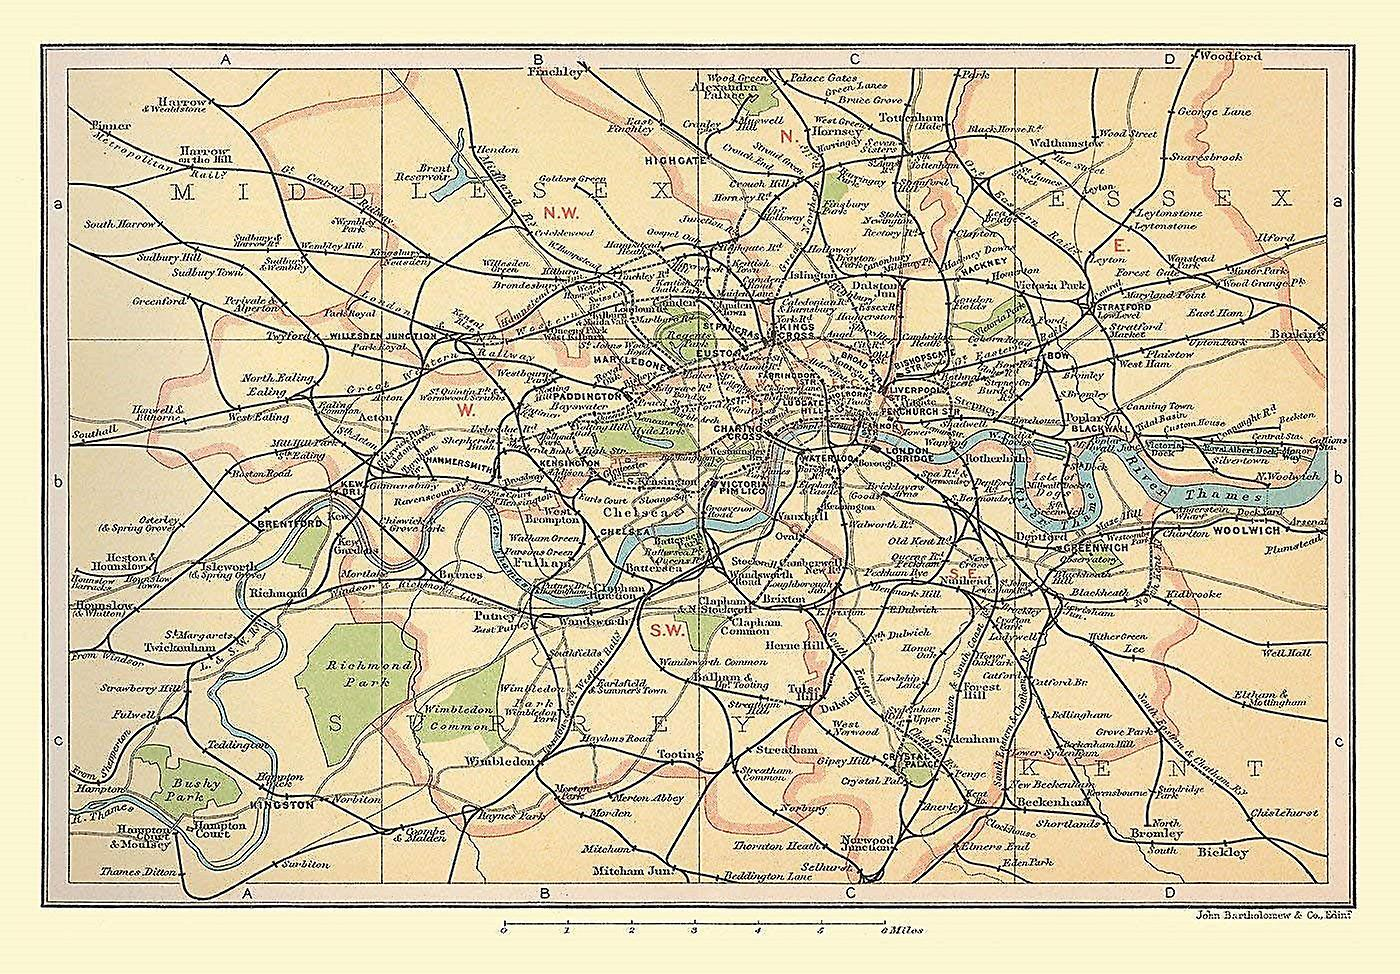 Map Of London And Surrounding Suburbs.Railway Map Of London Suburbs 1908 1000 Piece Jigsaw Puzzle Jhg